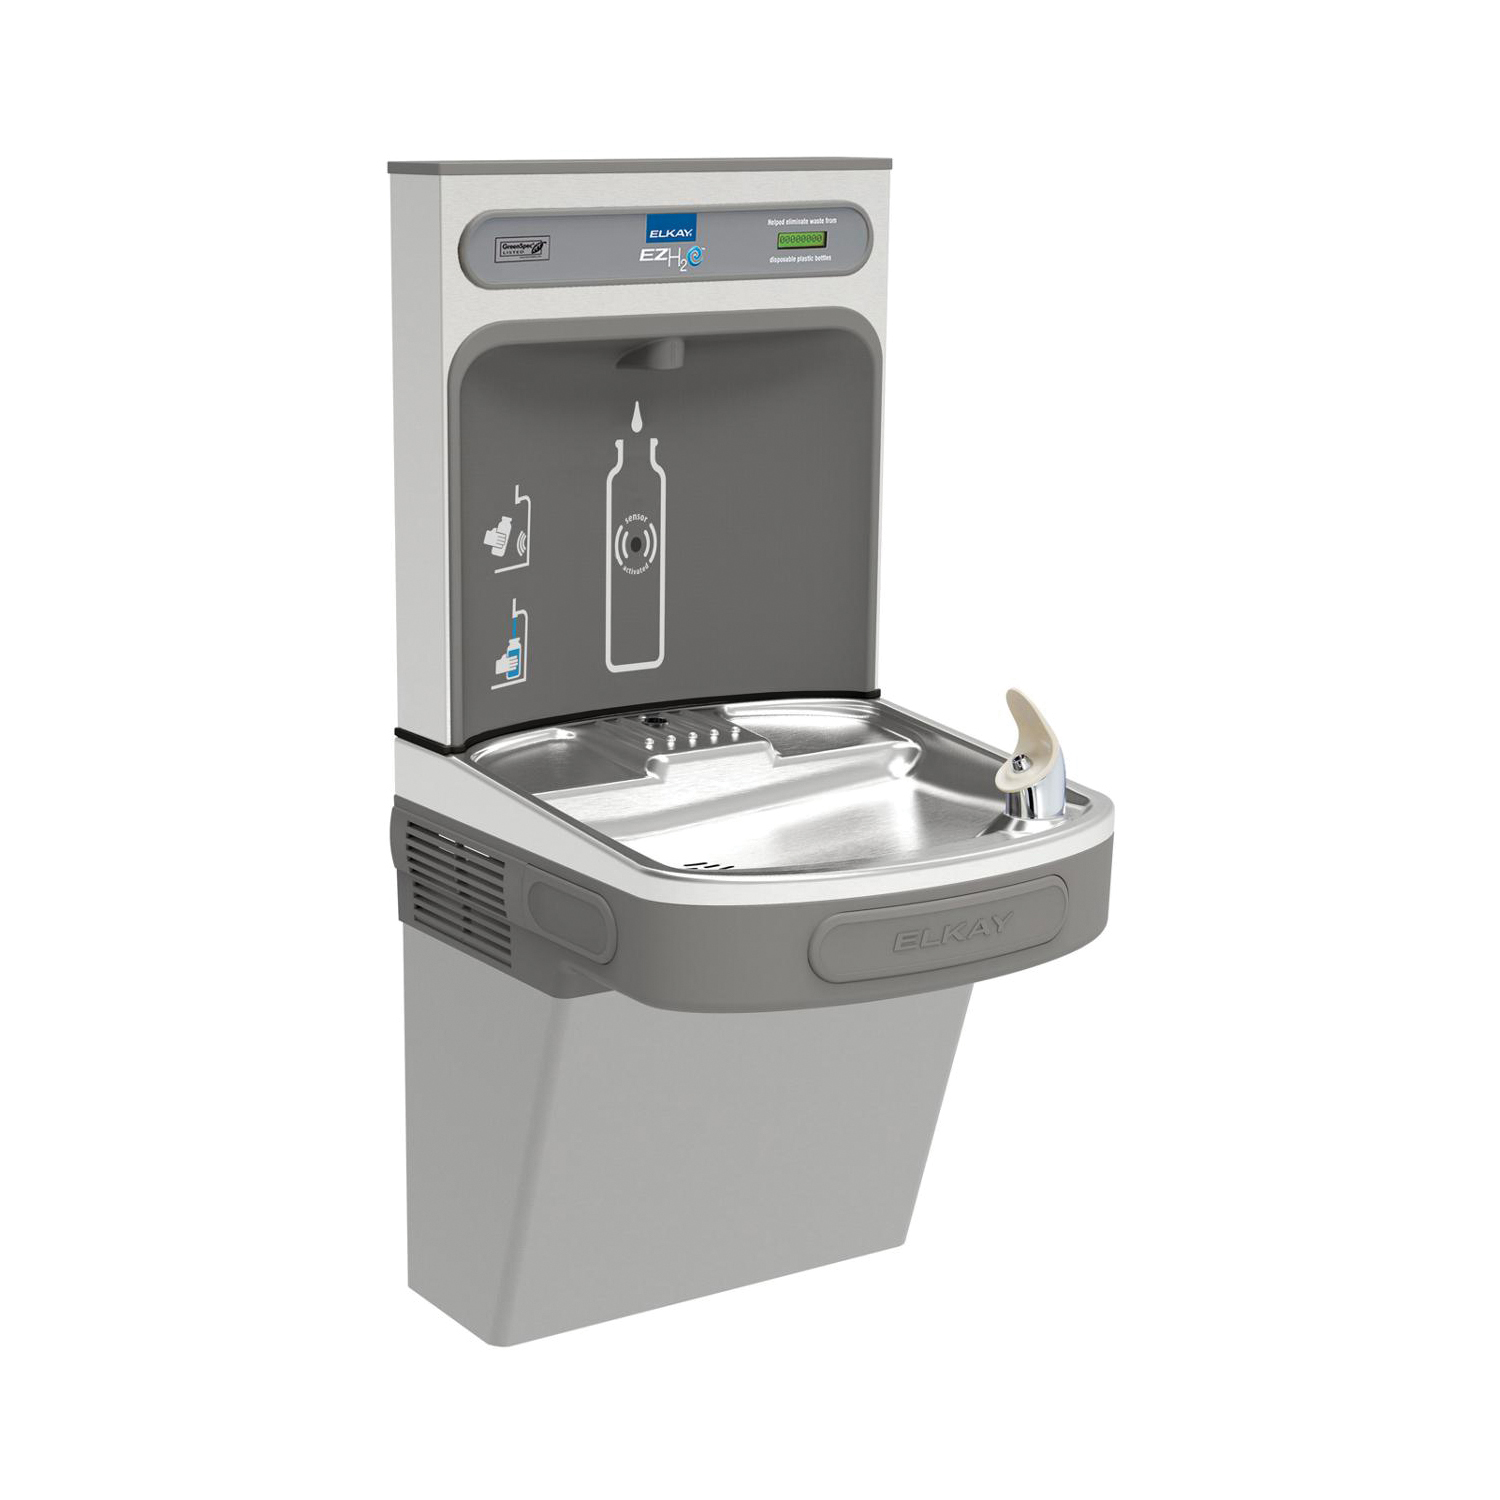 Elkay® EZS8WSLK Non-Filtered Bottle Filling Station and Cooler, 1.1 gpm, Sensor Operation, Refrigerated Chilling, Domestic